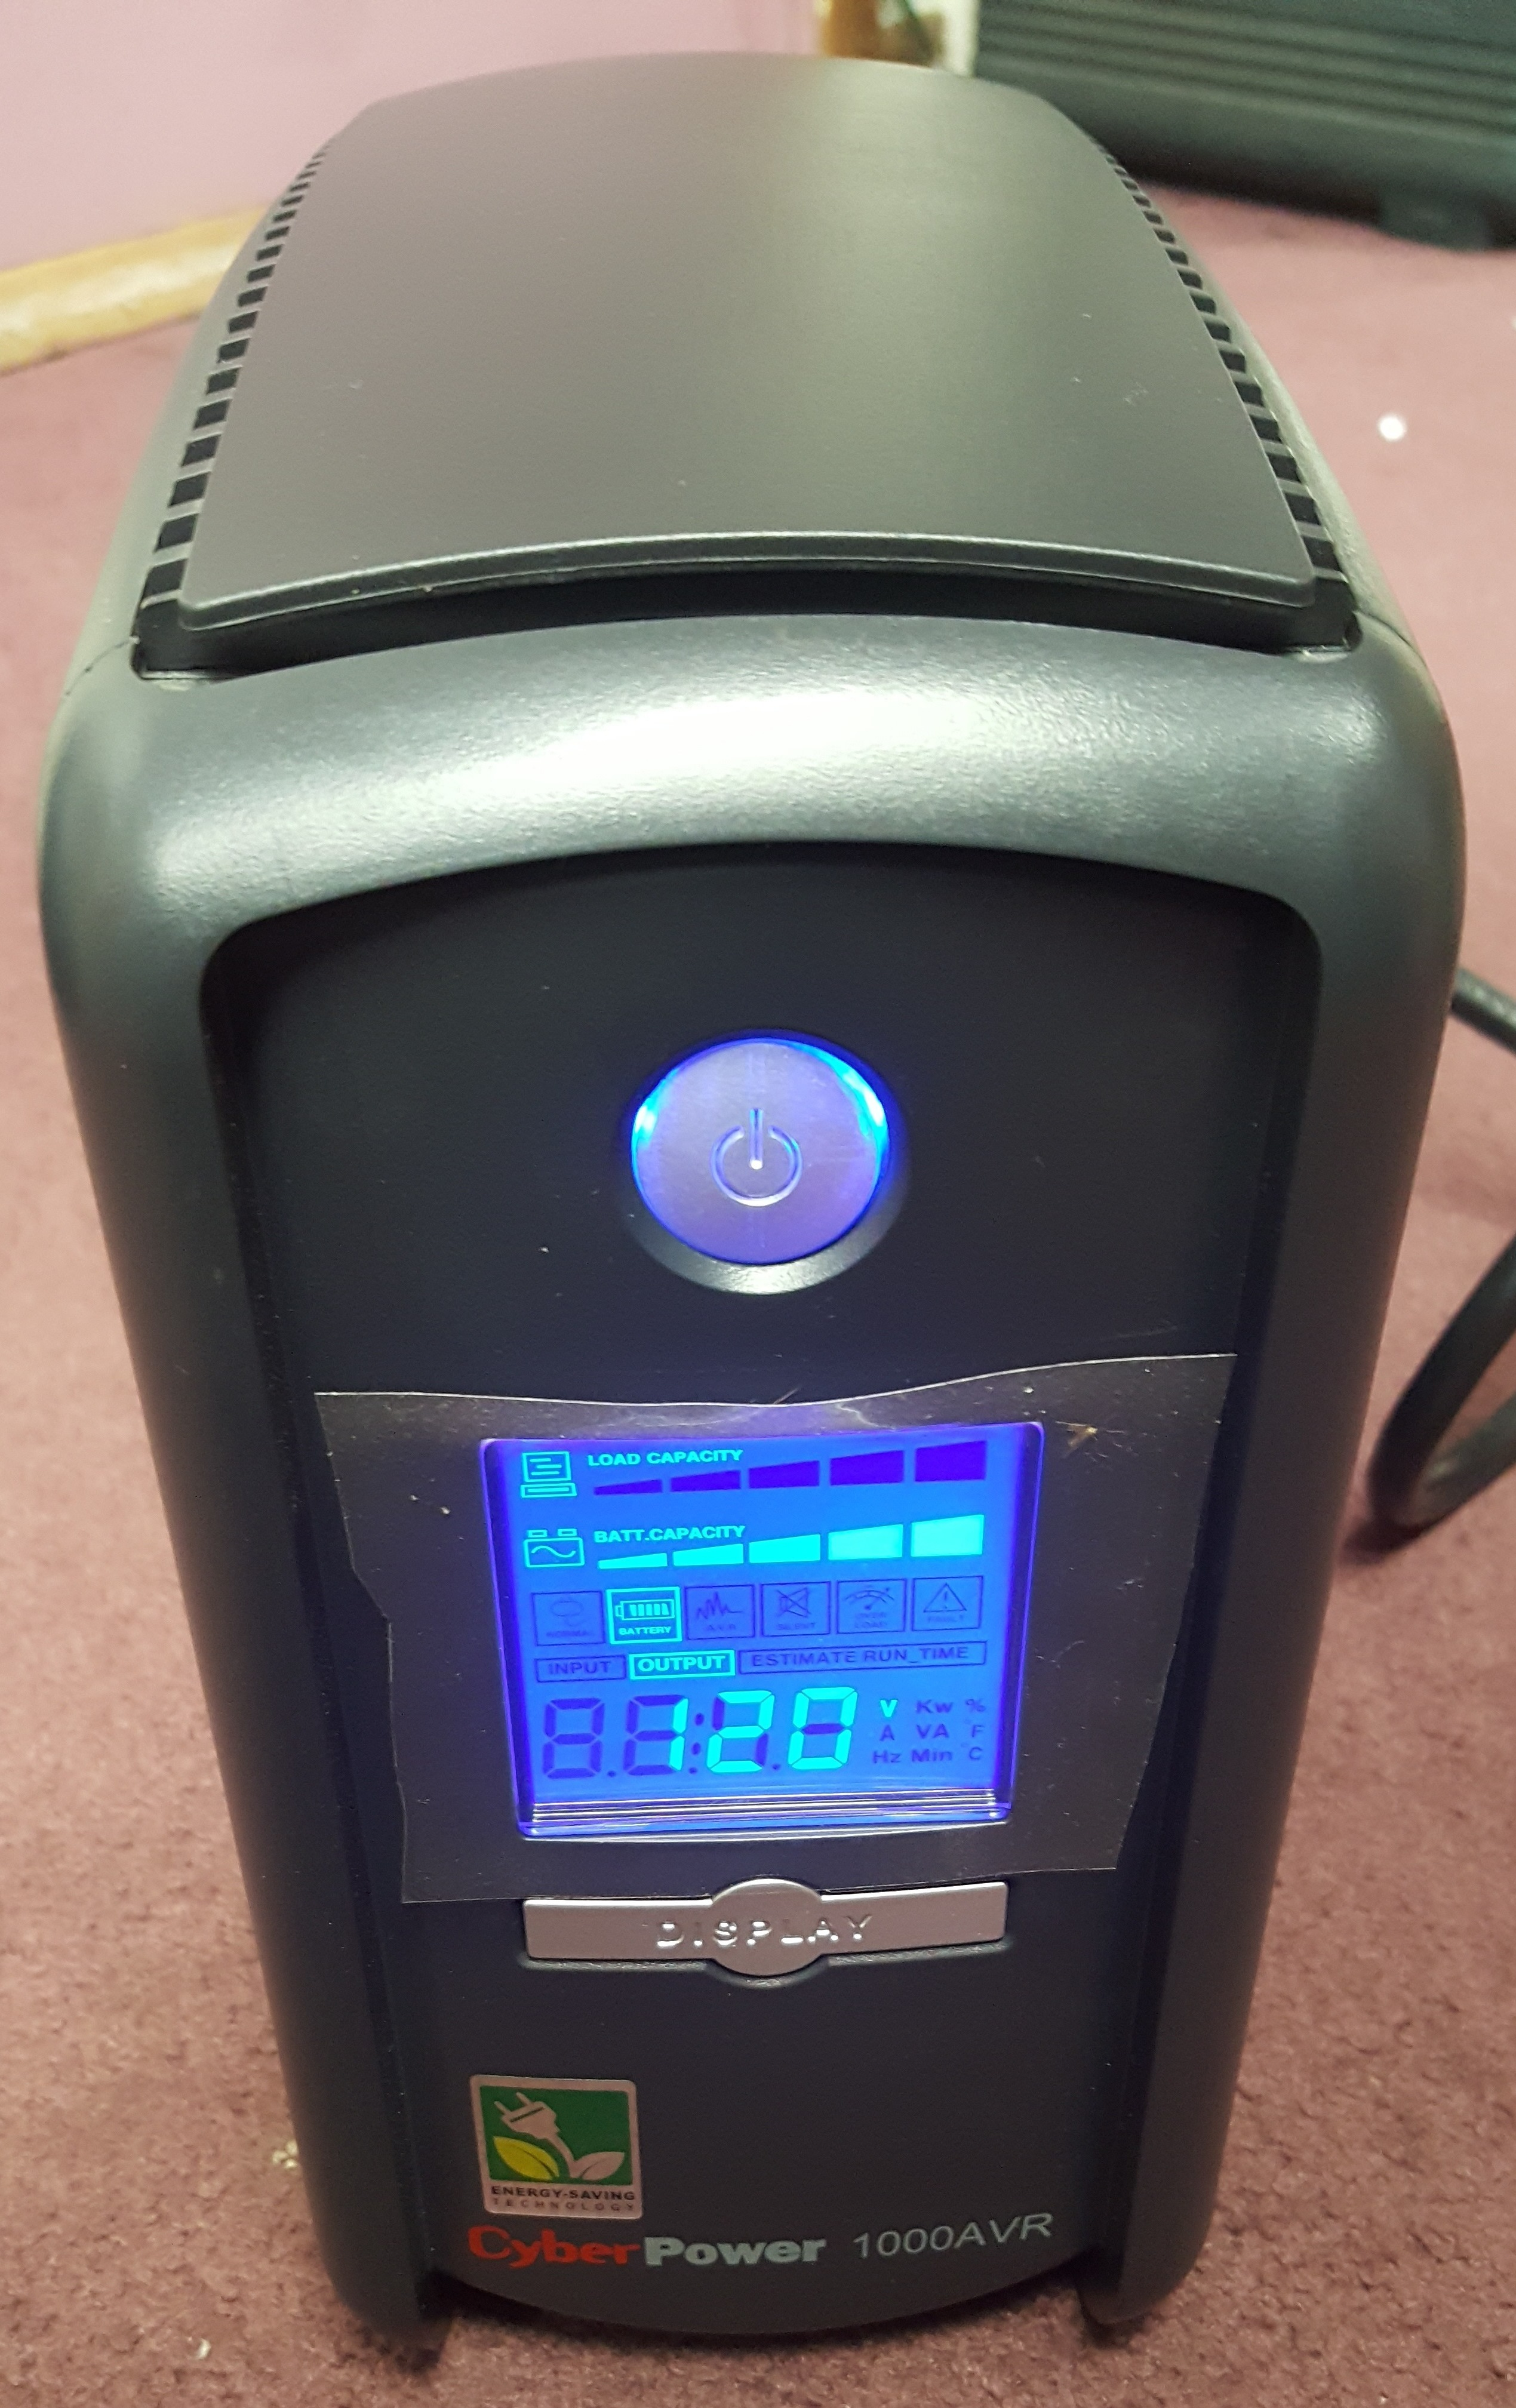 CYBERPOWER 1000AVR UPS 9 OUTLETS 1000/600W